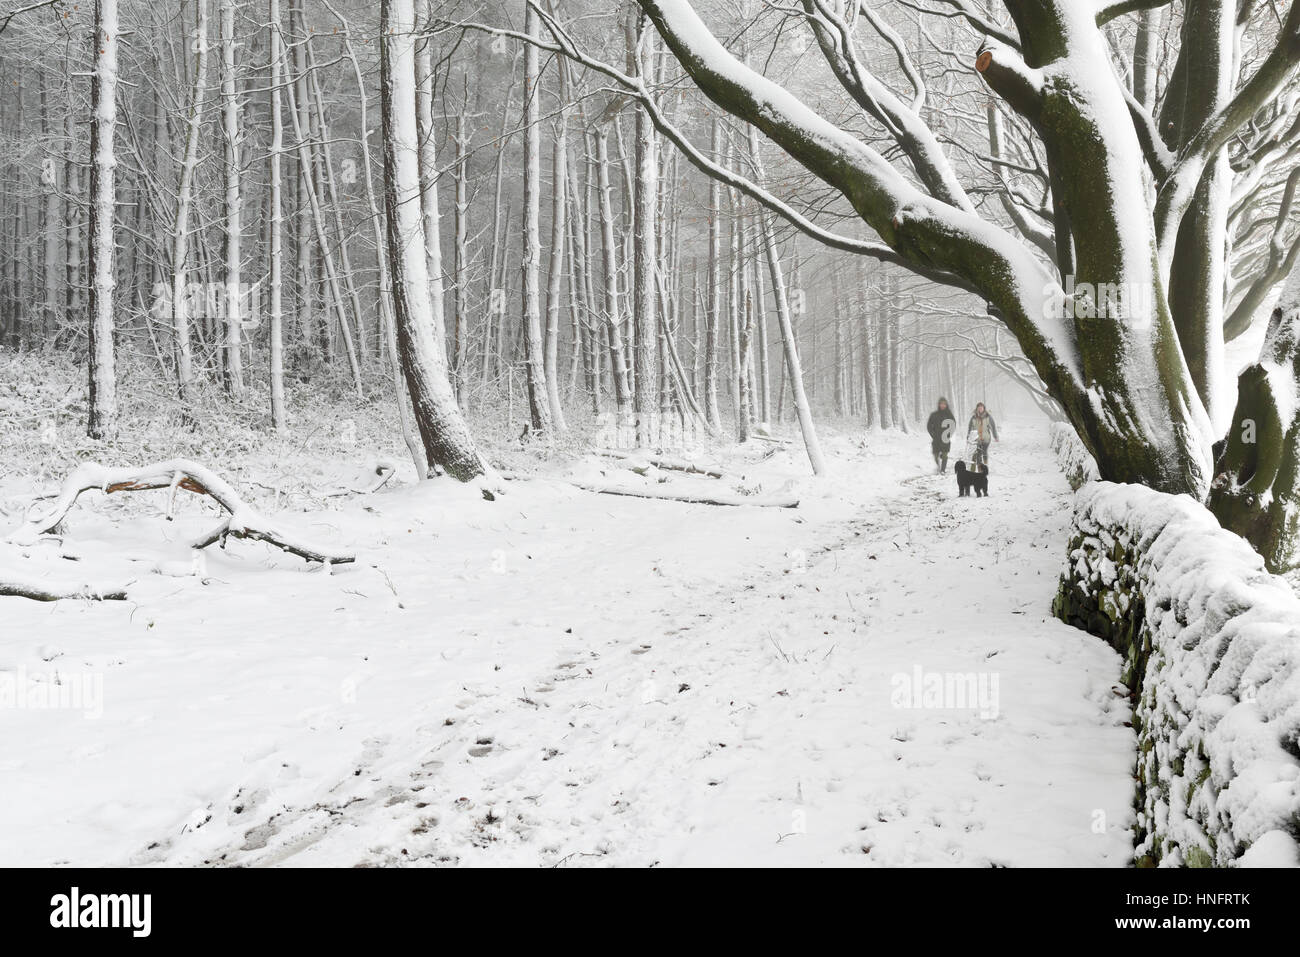 Matlock, Derbyshire, UK. 12th Feb, 2017. Heavy snowfall in the Derbyshire dales, near Matlock and surrounding areas.Derbyshire Stock Photo